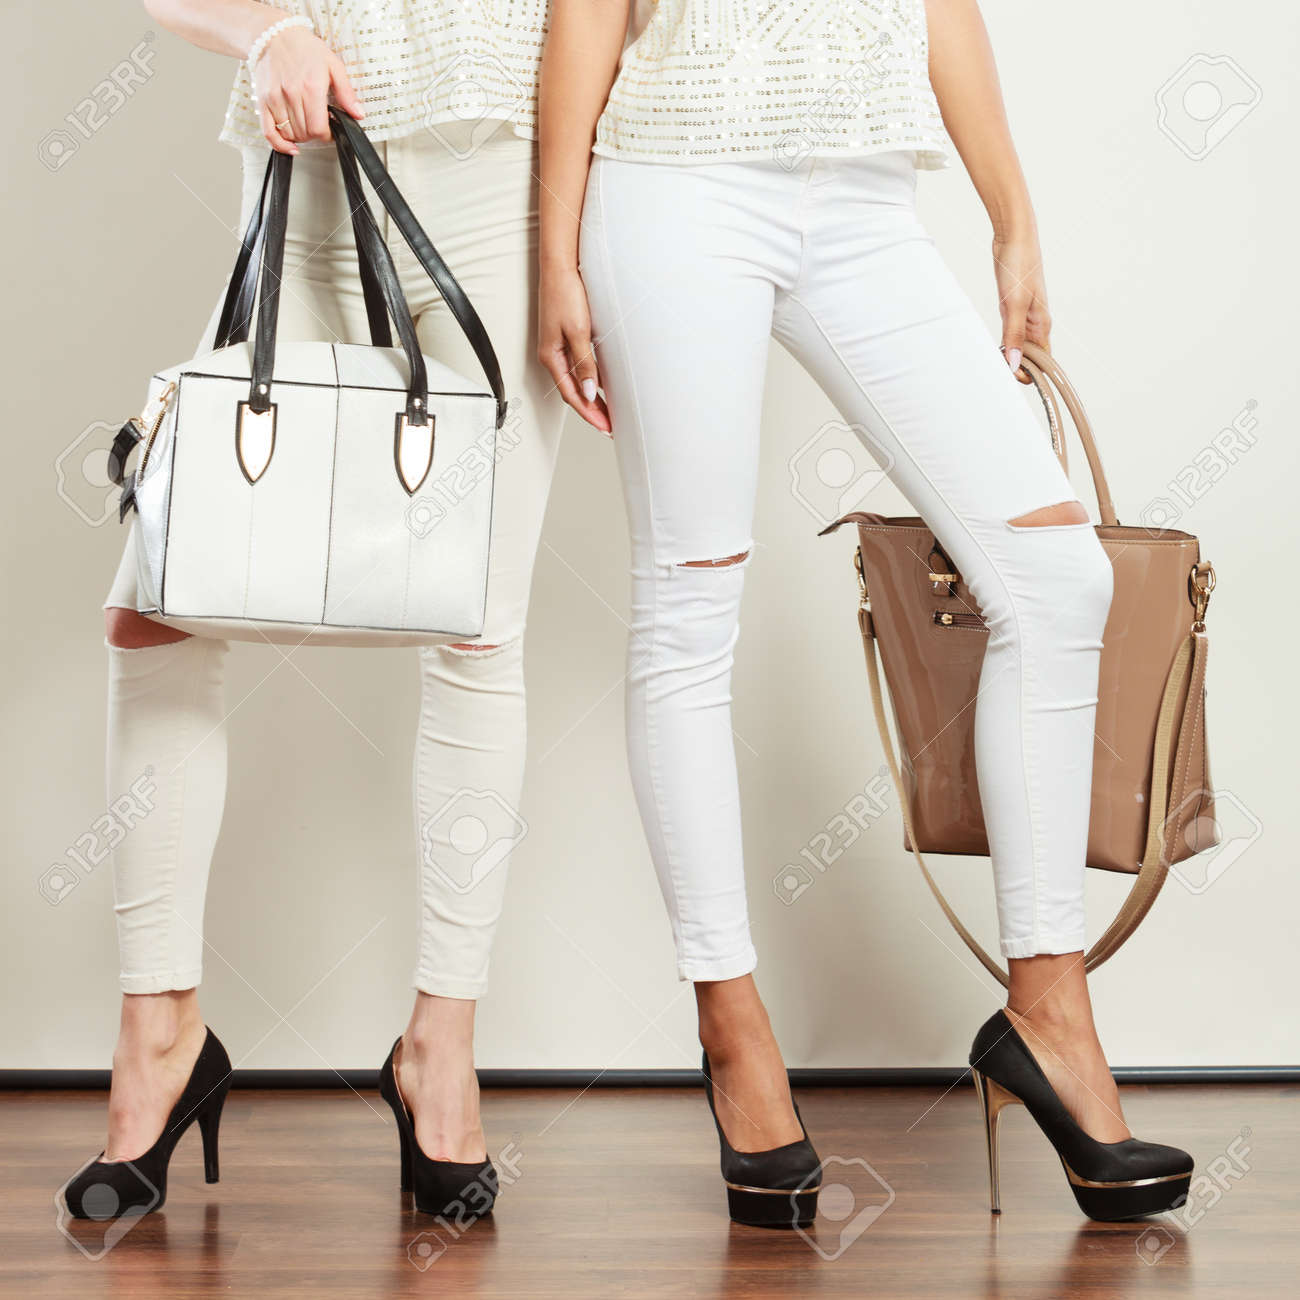 ce493cdf877 Fashion accessories for women. Two ladies holding handbags. Girls..